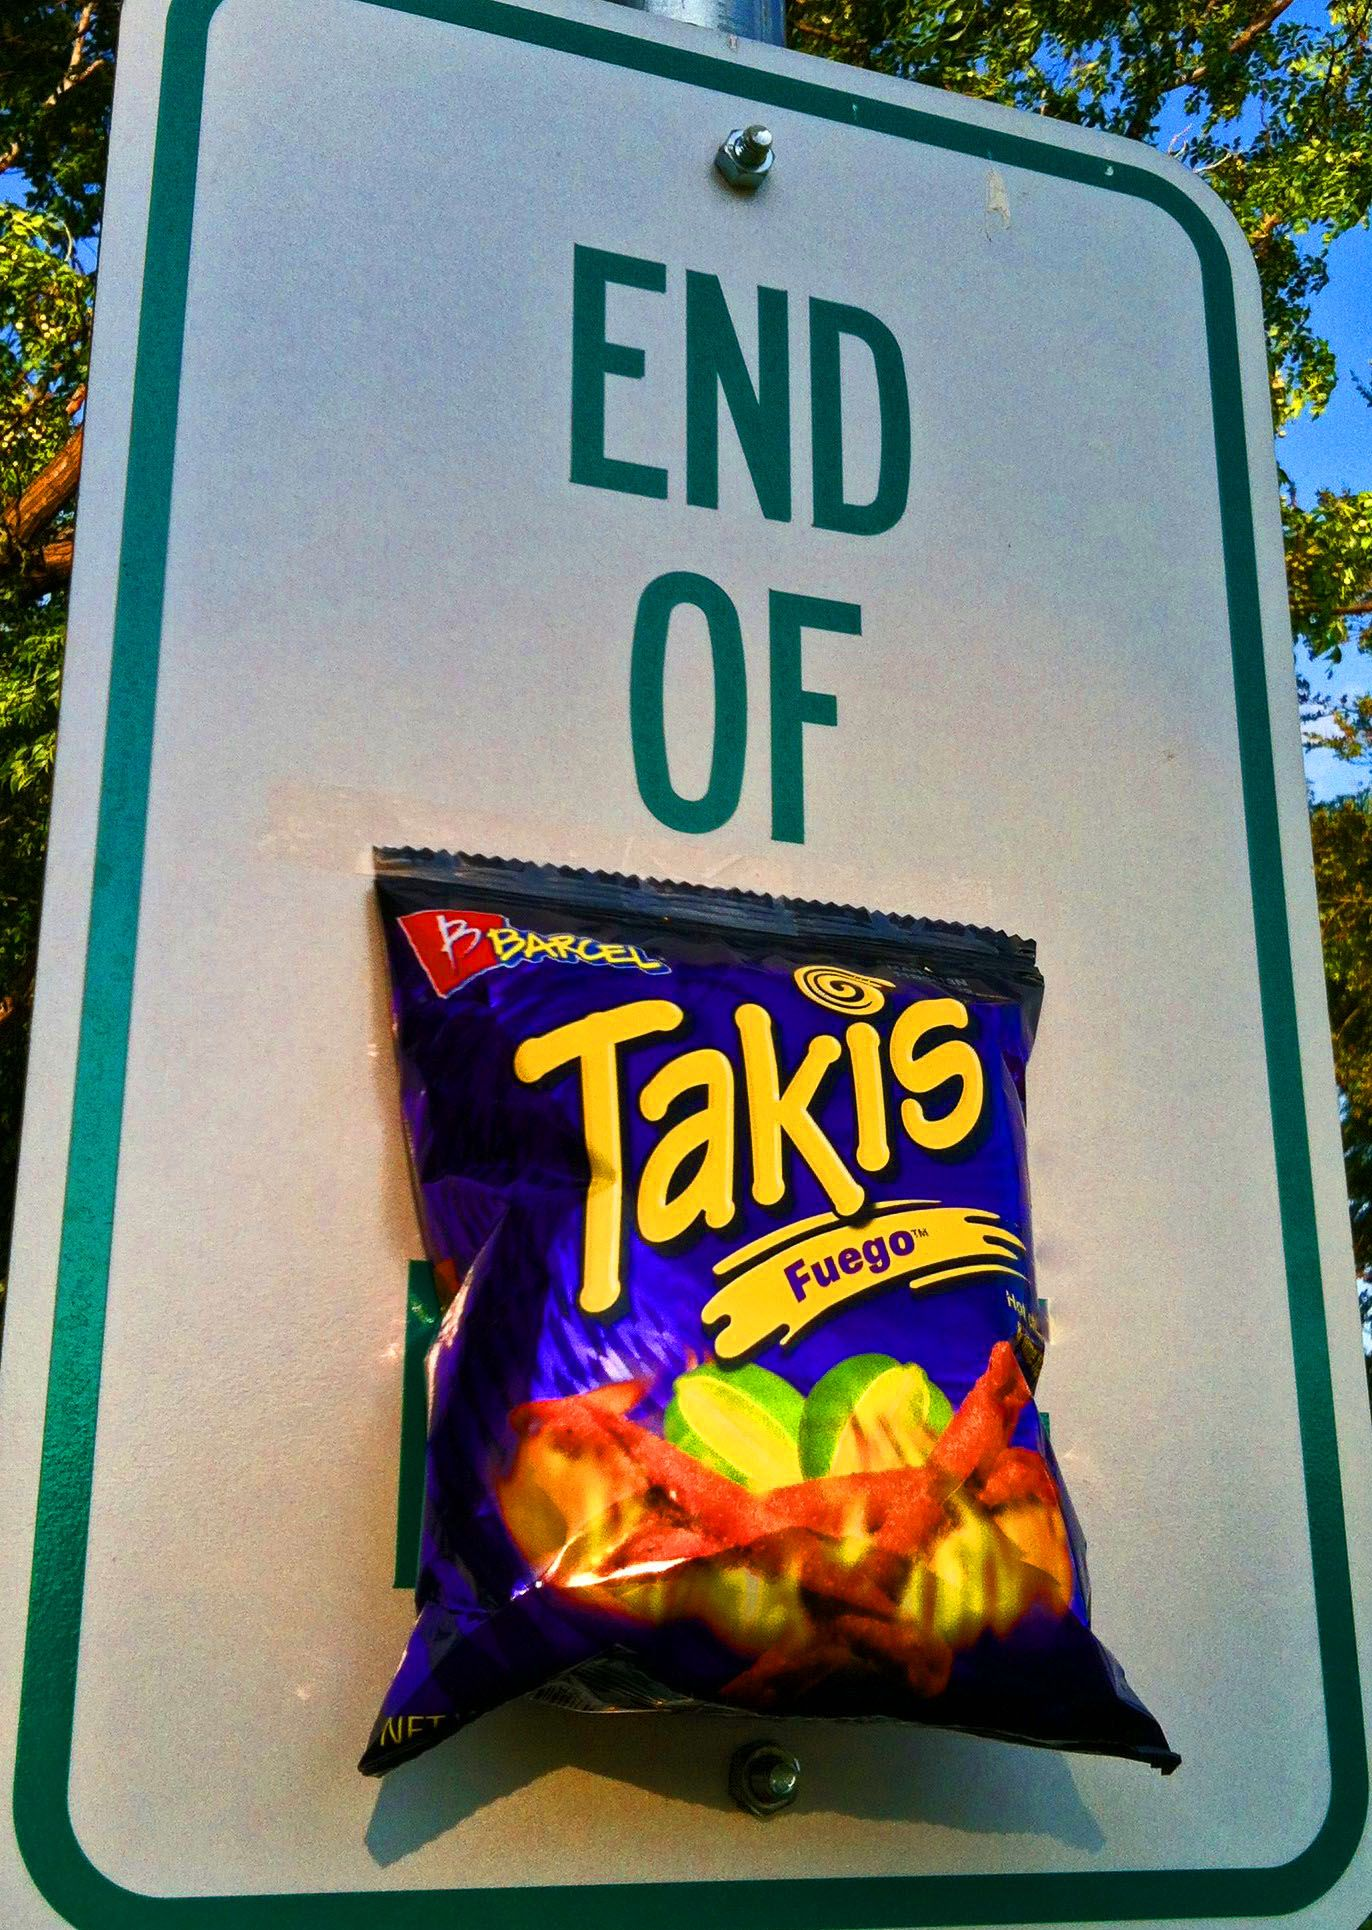 End of takis just reach for another purplebag pop